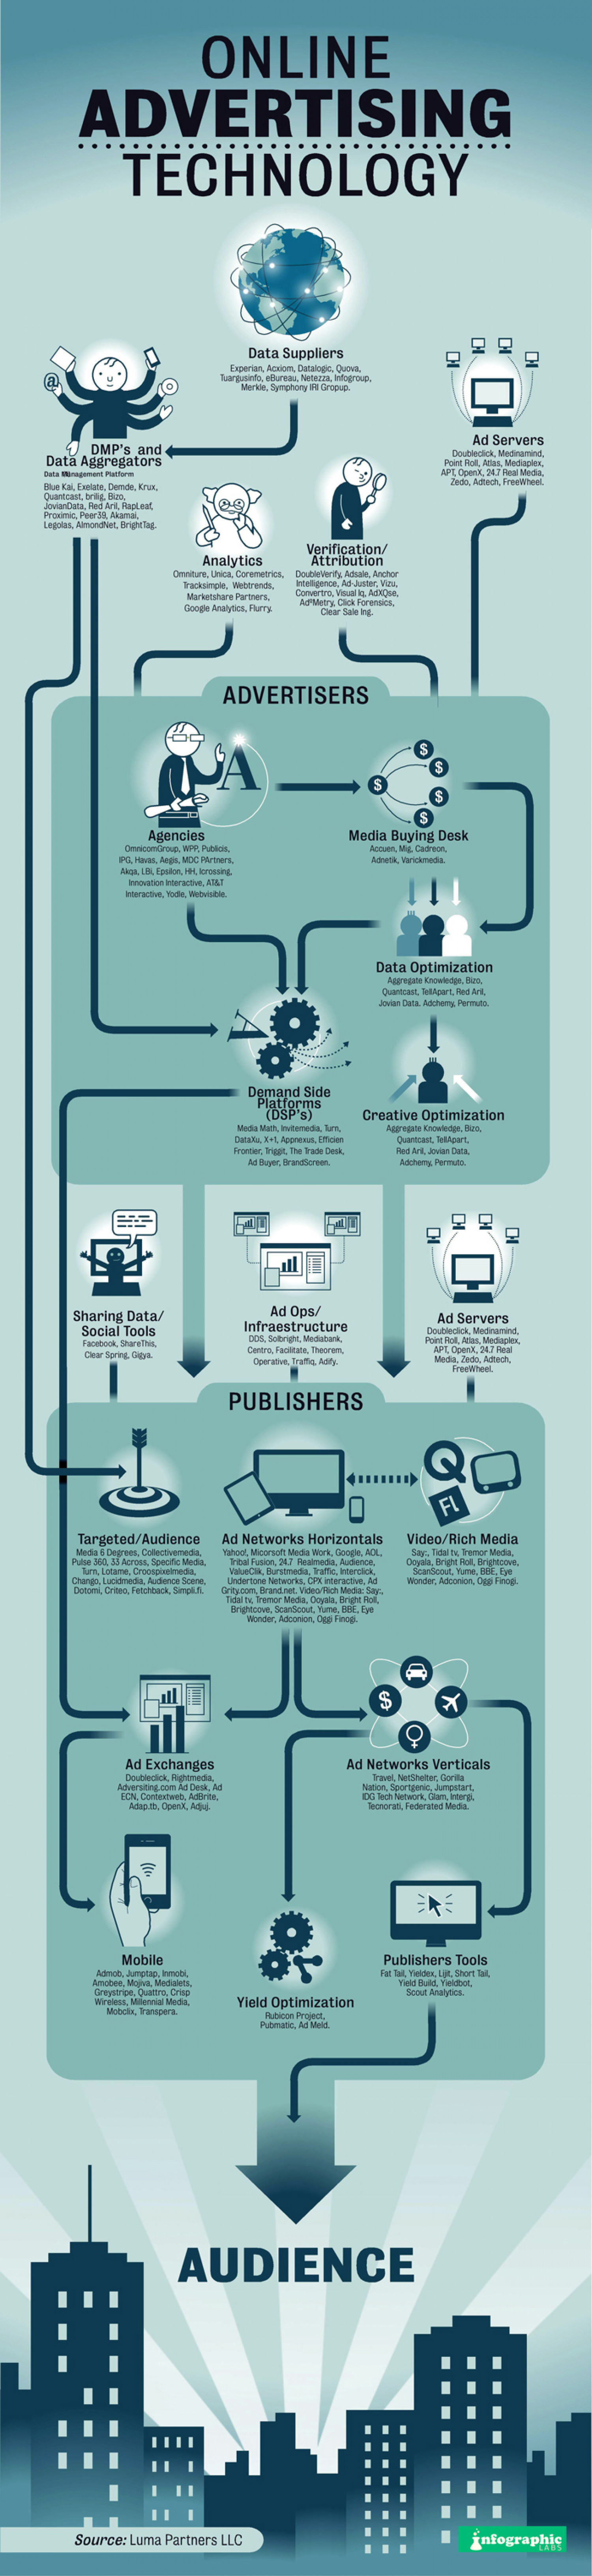 Online Advertising Technology Infographic